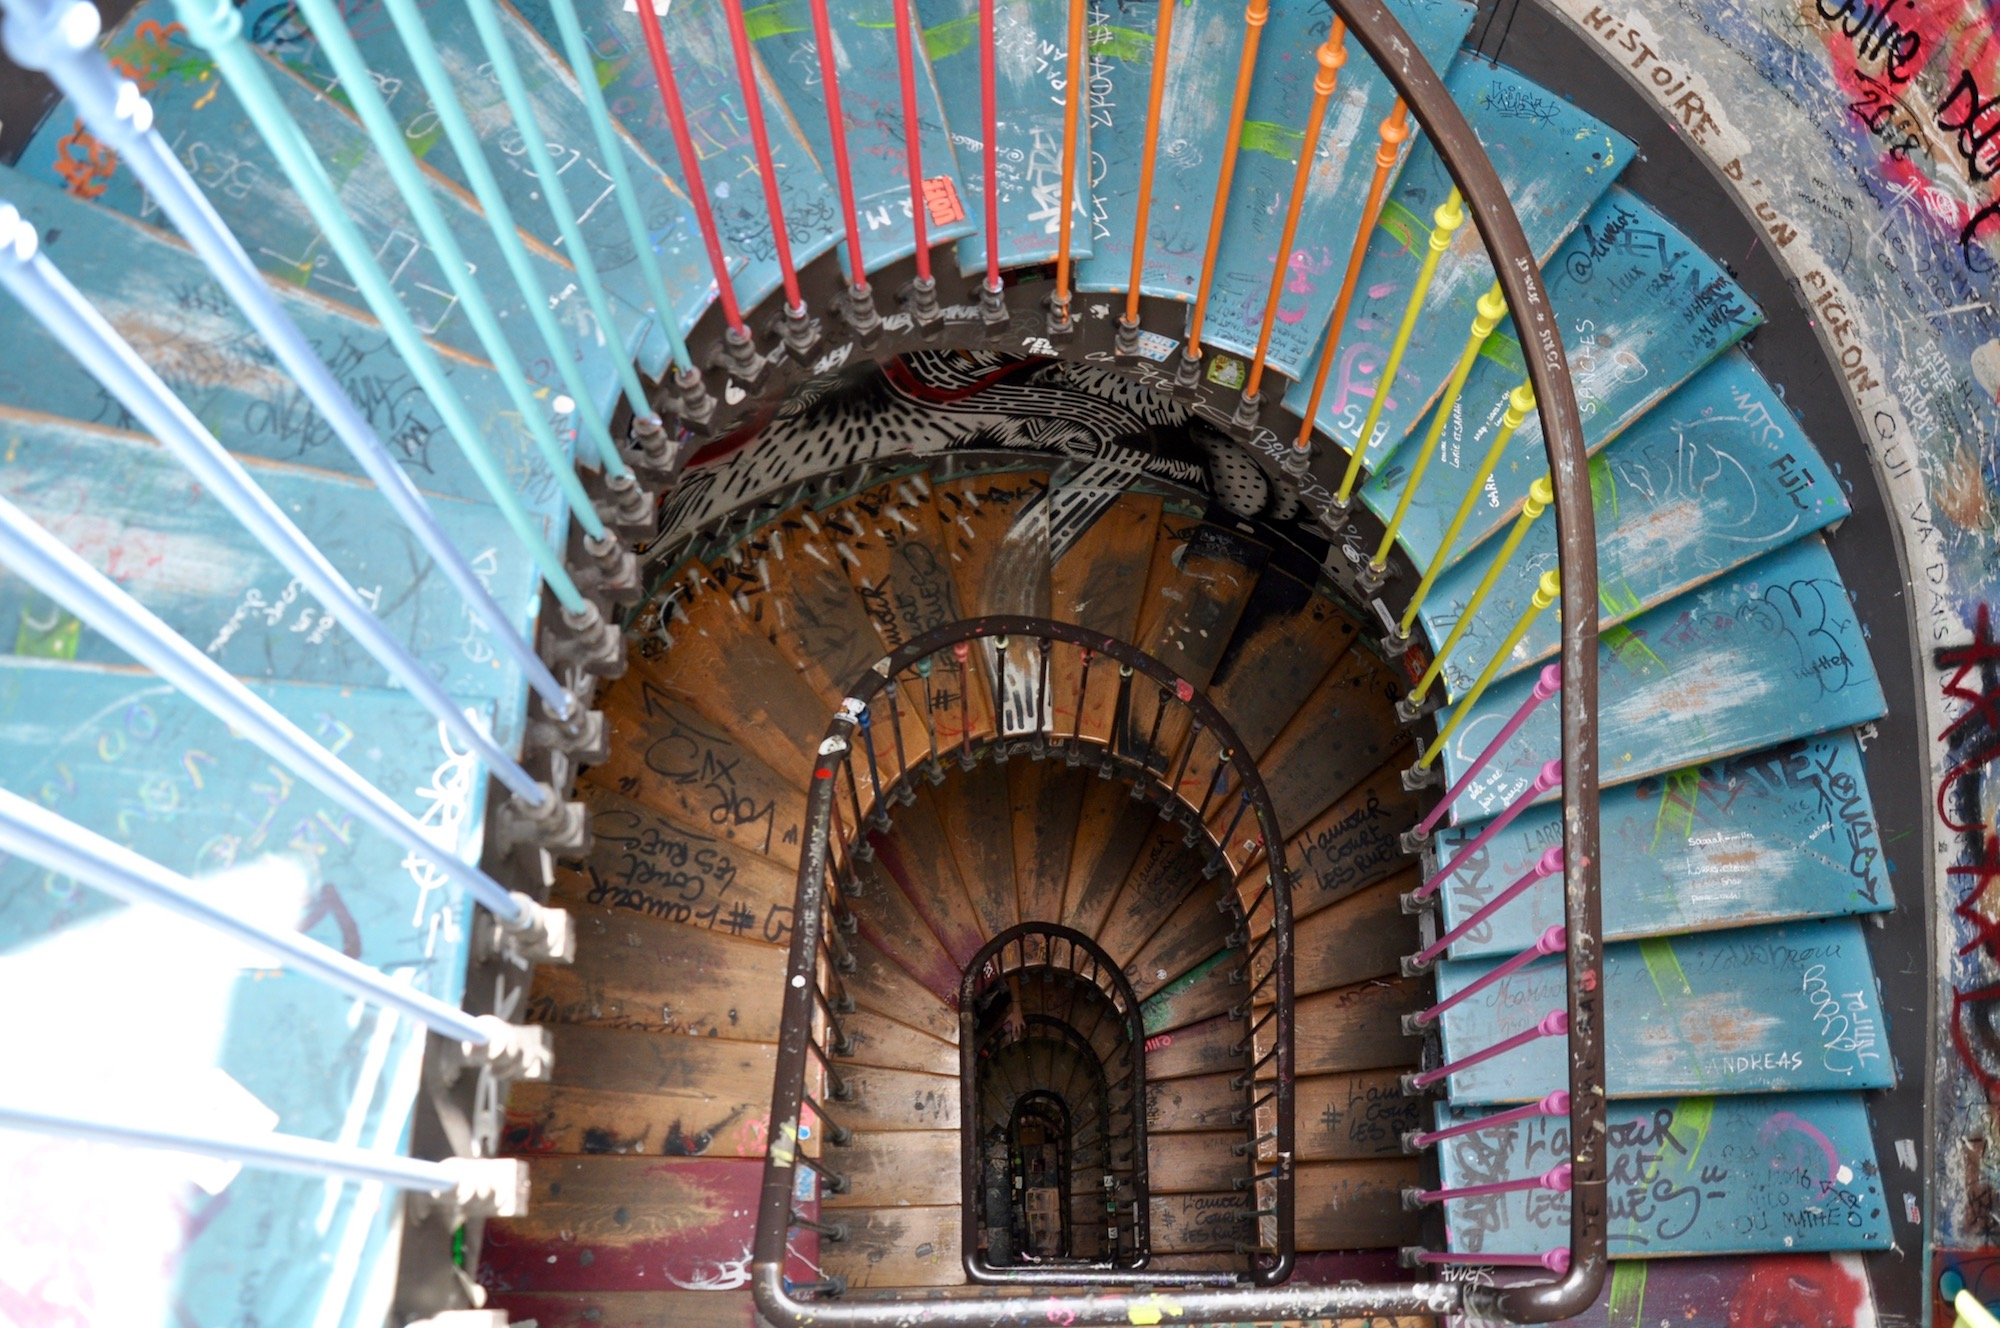 The graffiti covered spiral wooden staircase at artist squat 59 Rivoli in Paris.